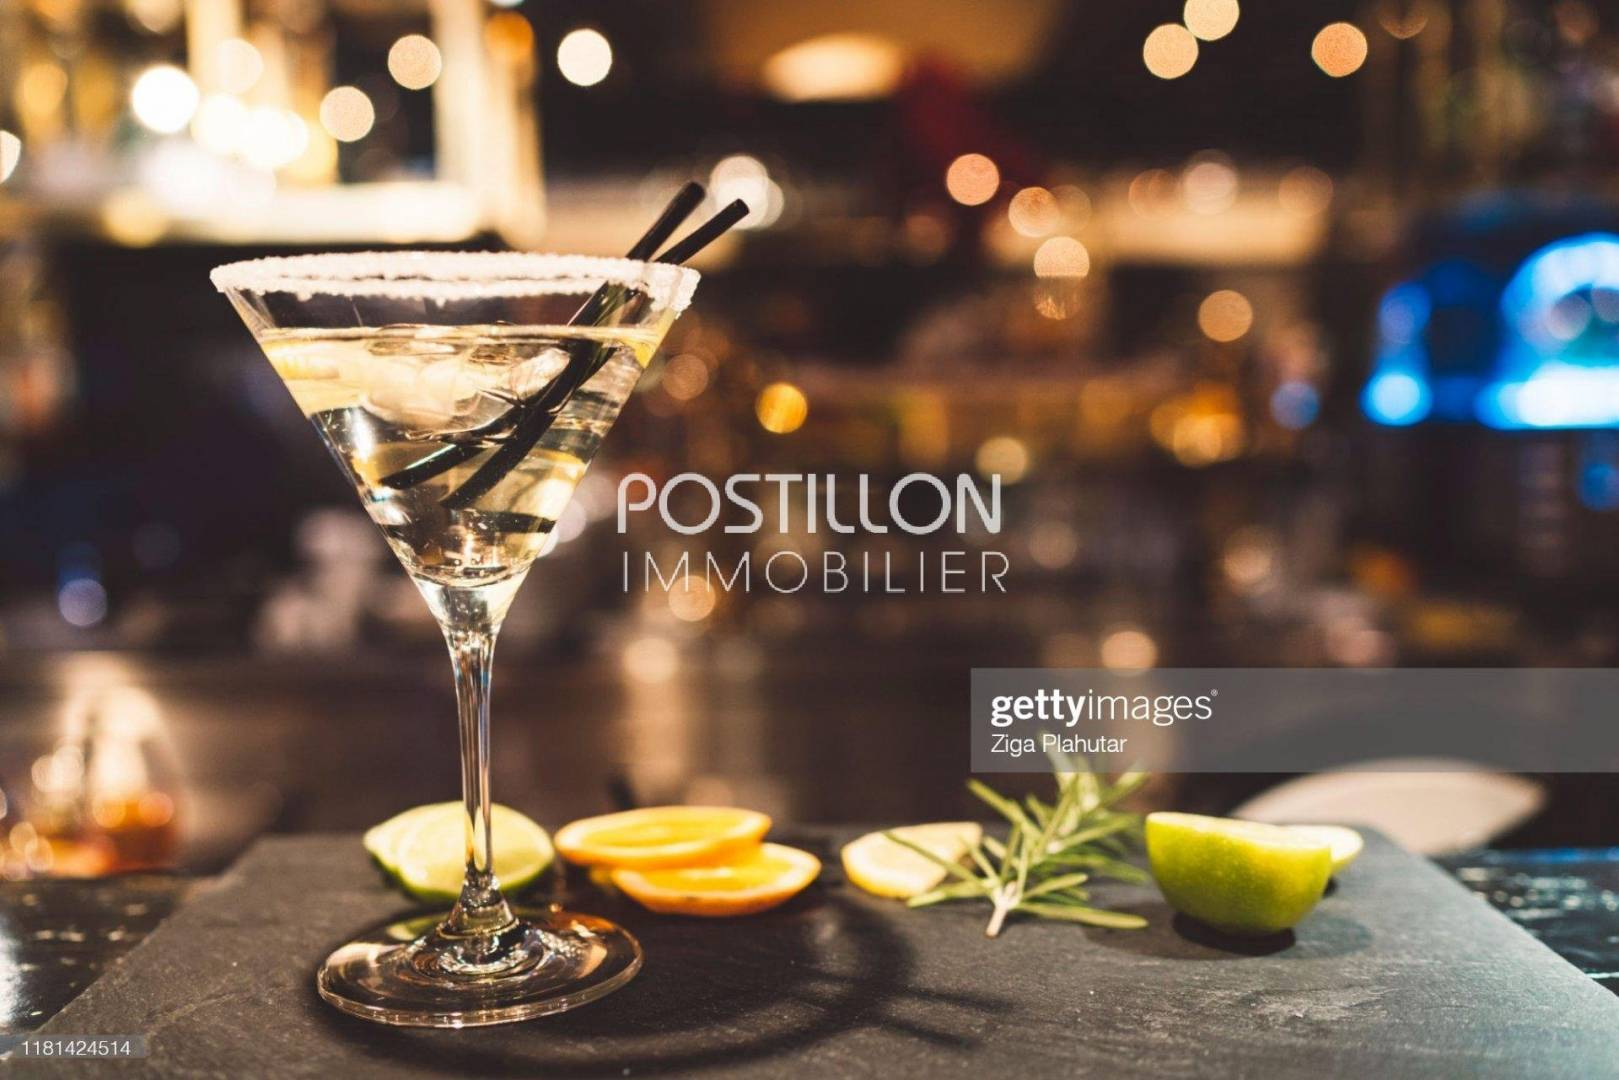 Glass of martini on a grnished surface with lemon slices and rosemary. Black bakground. Glas garnished with sugar on the edge.